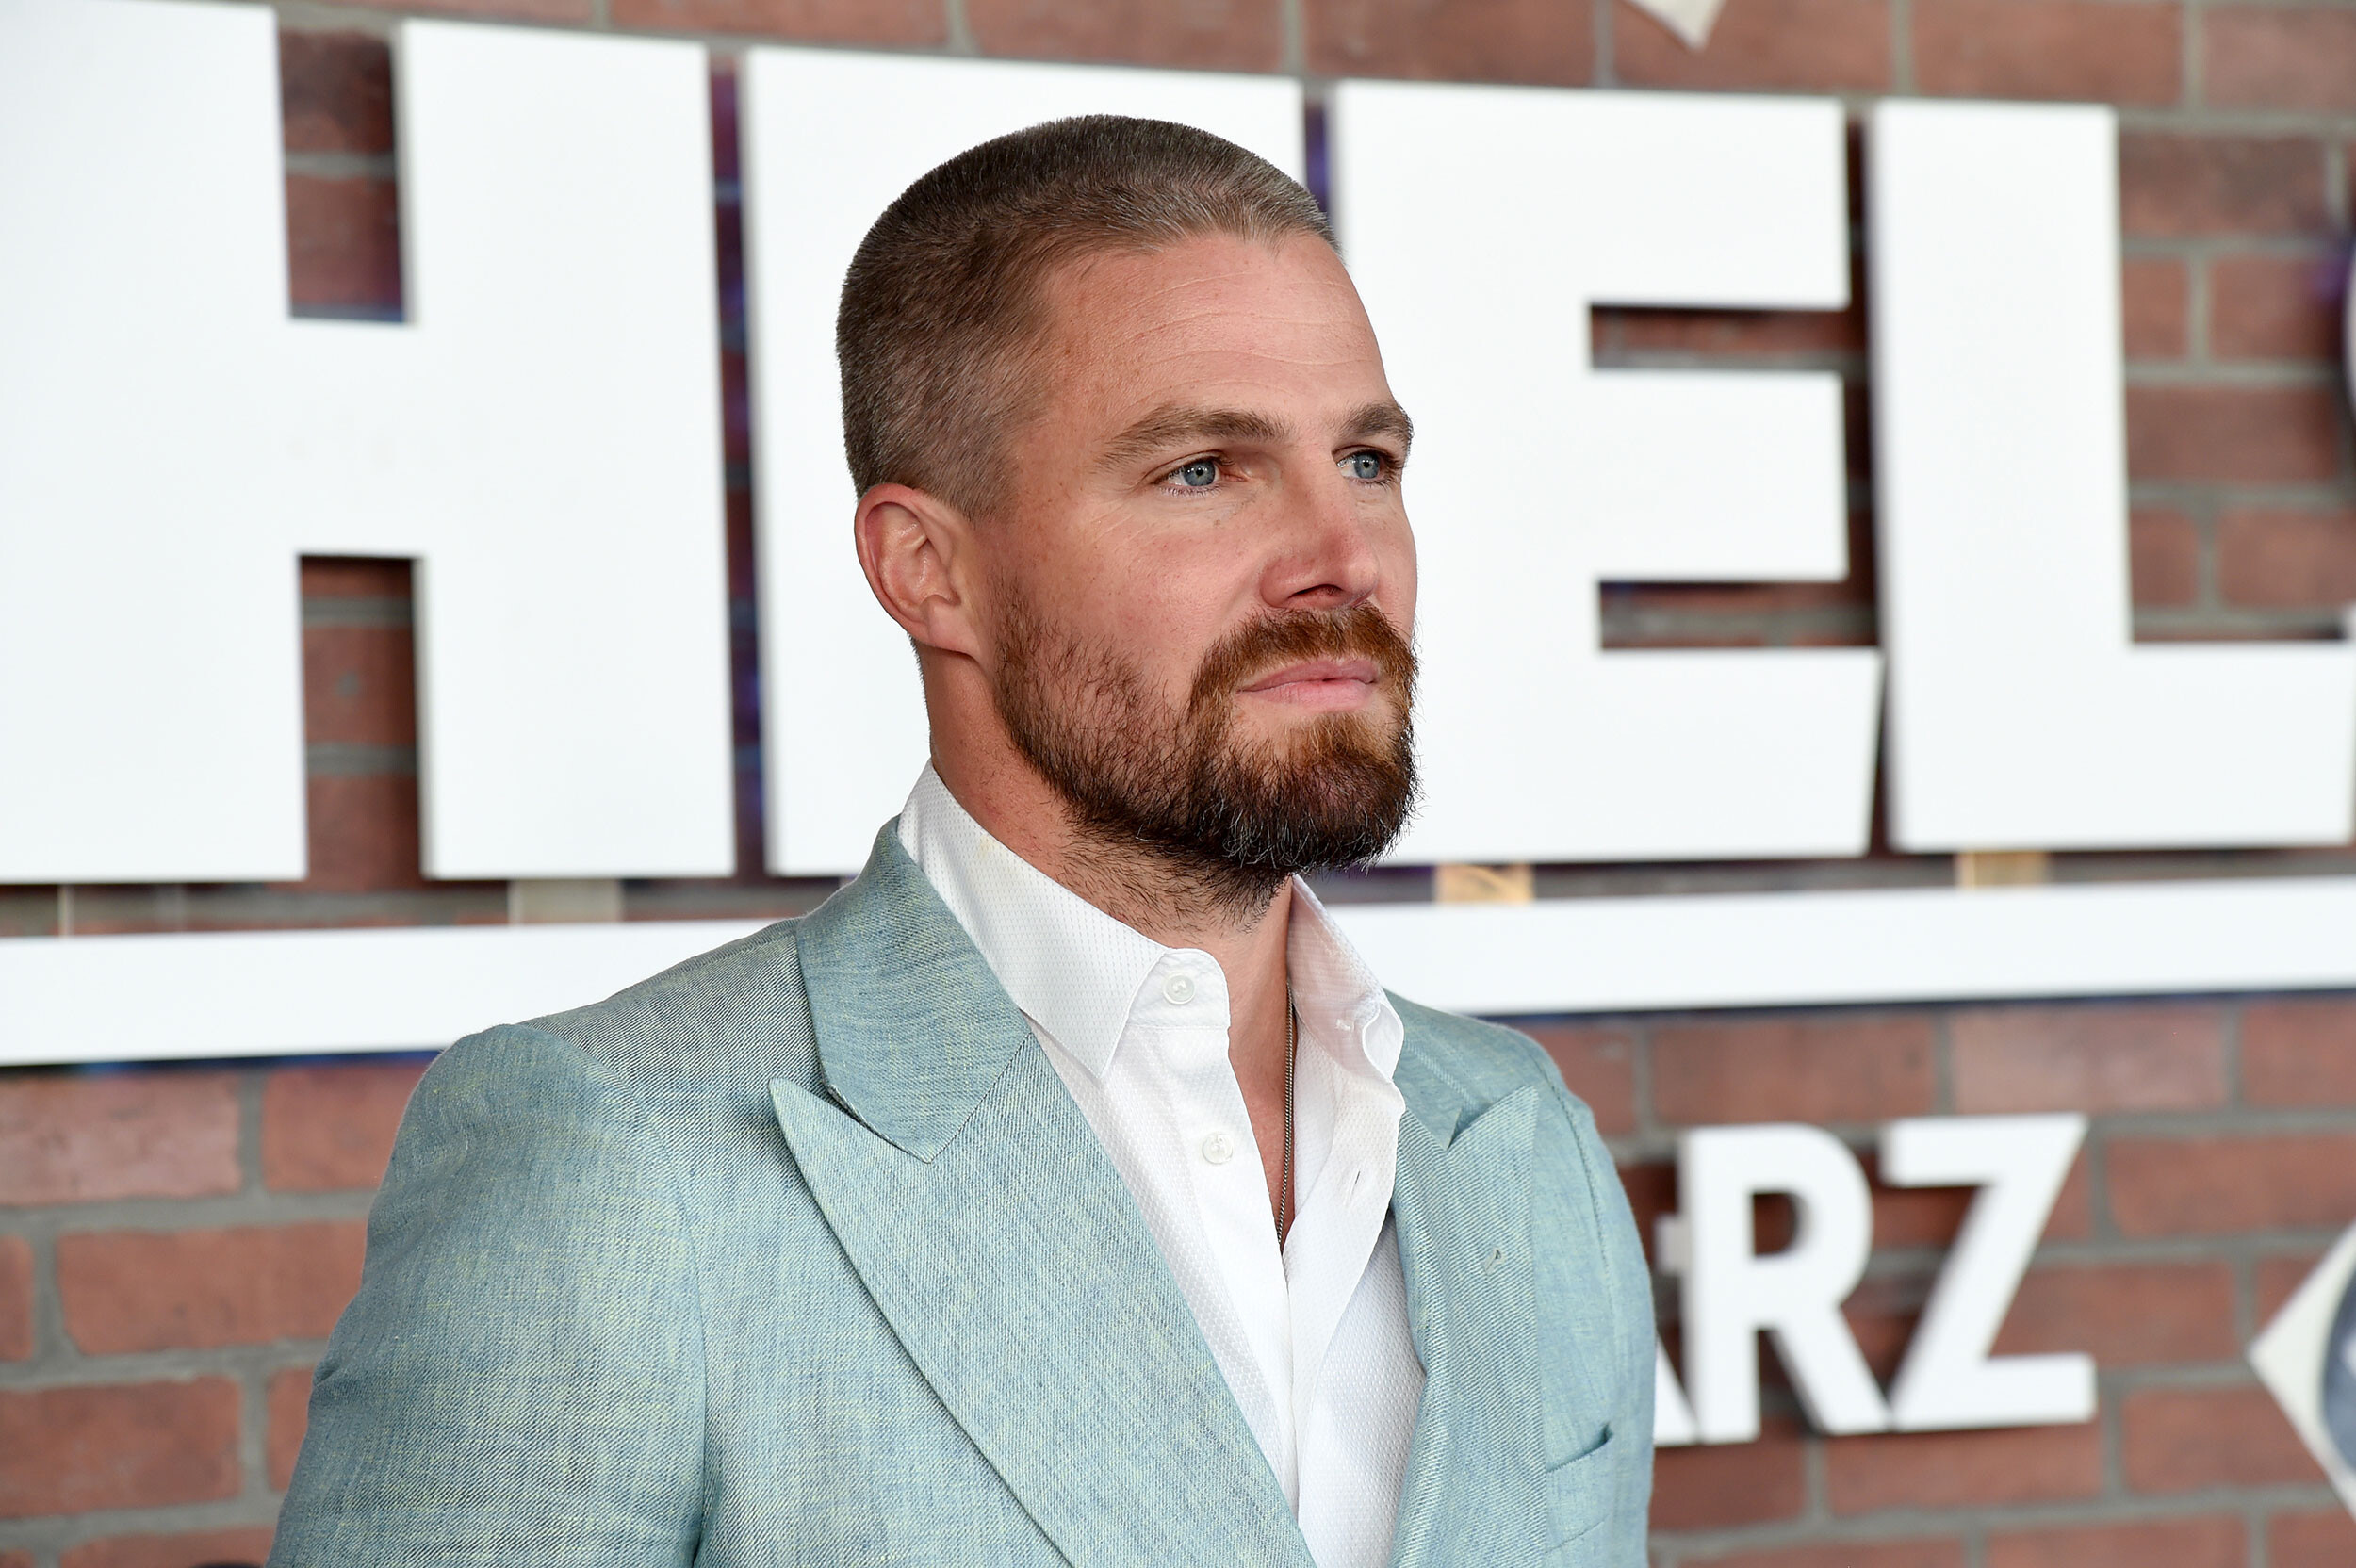 Stephen Amell says he had 'too many drinks' before being asked to leave flight